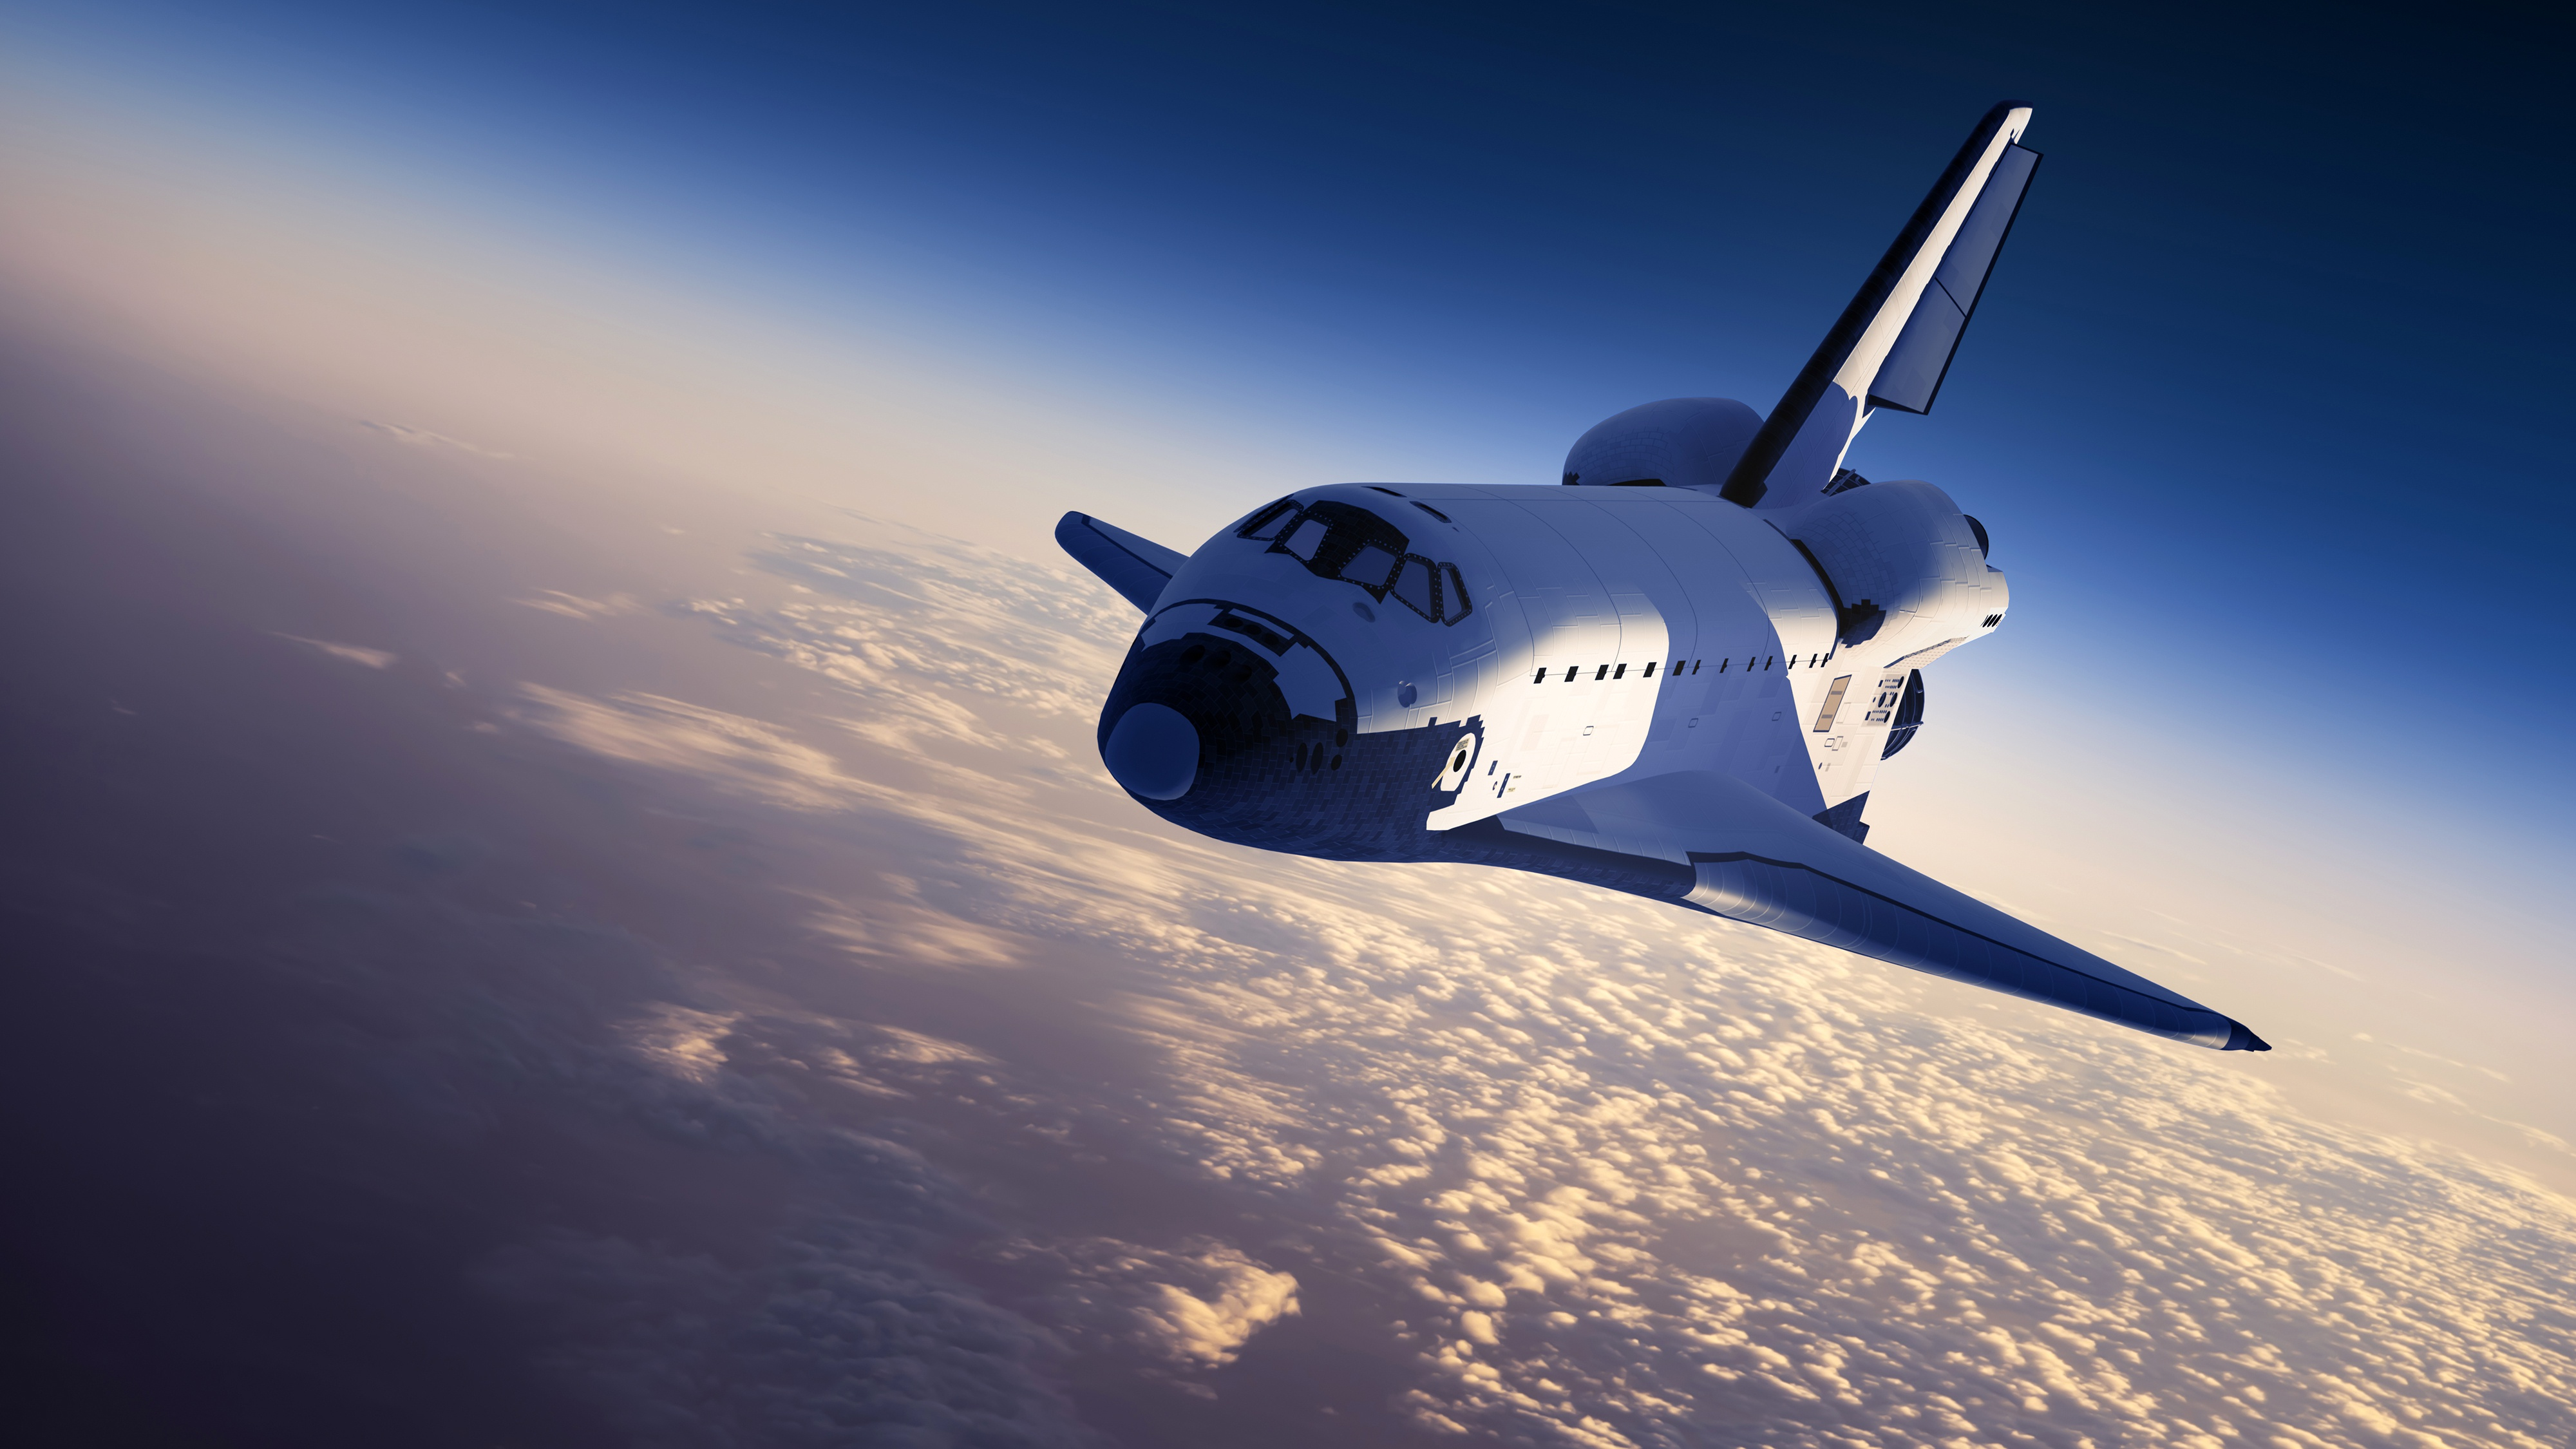 Wallpaper of Cloud Space Space Shuttle background HD image 4000x2250